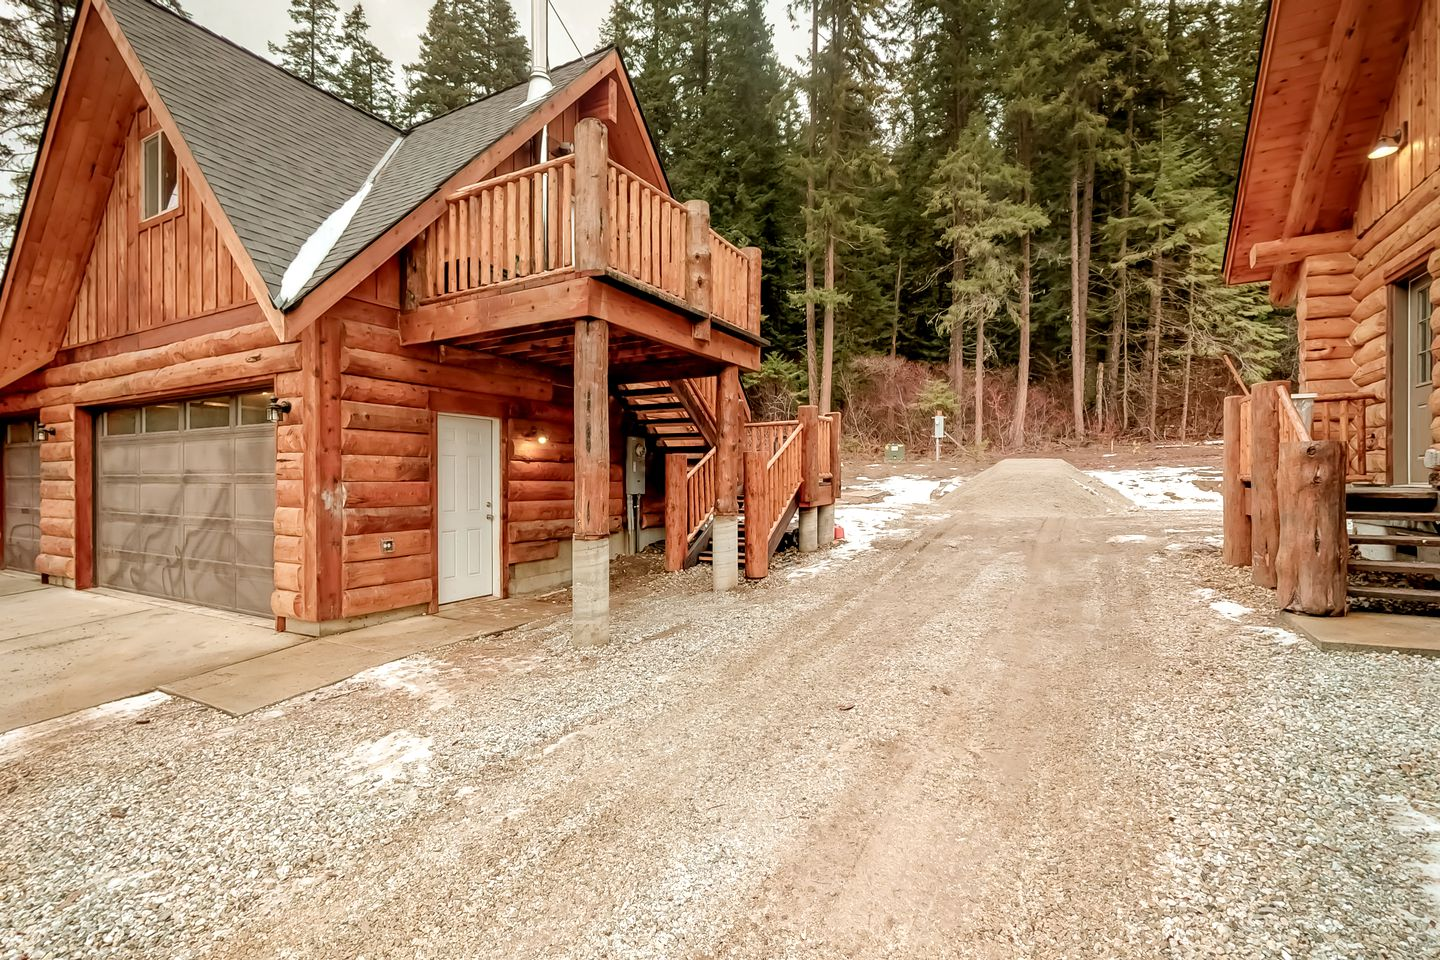 Cabins (Leavenworth, Washington, United States)